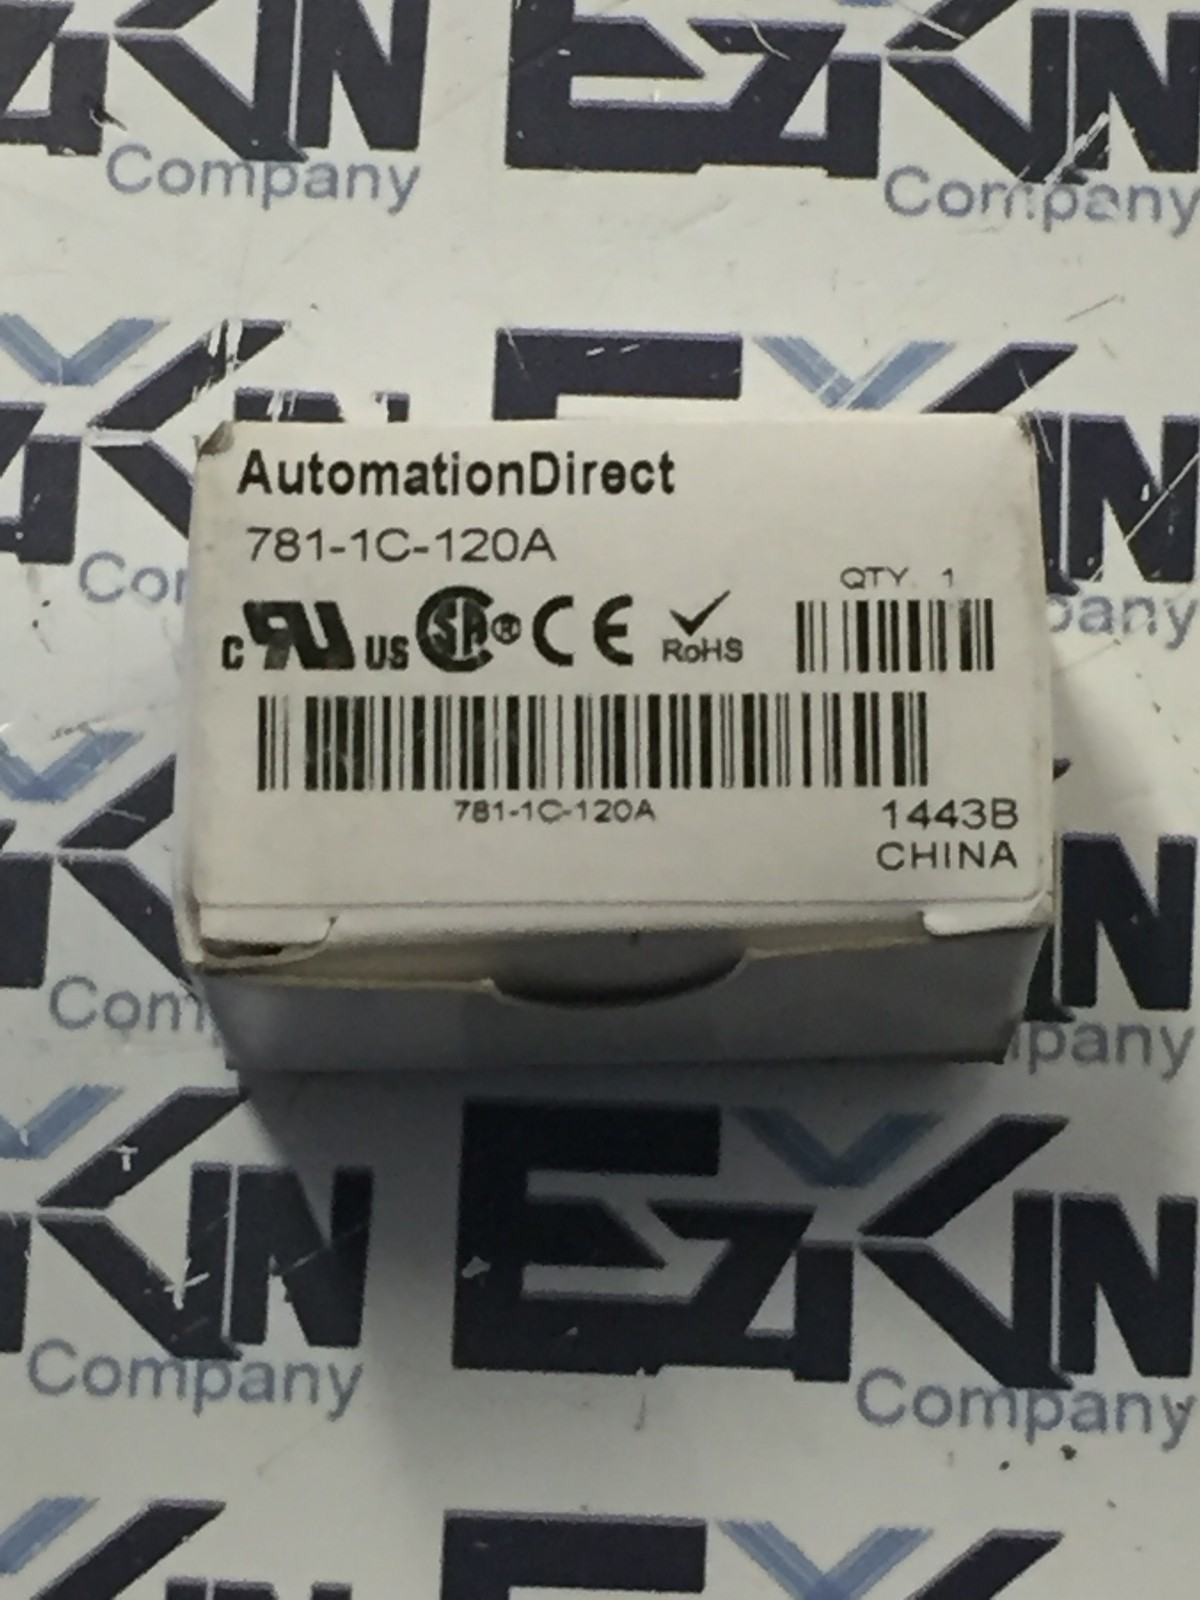 Automation Direct 781-1C-120A